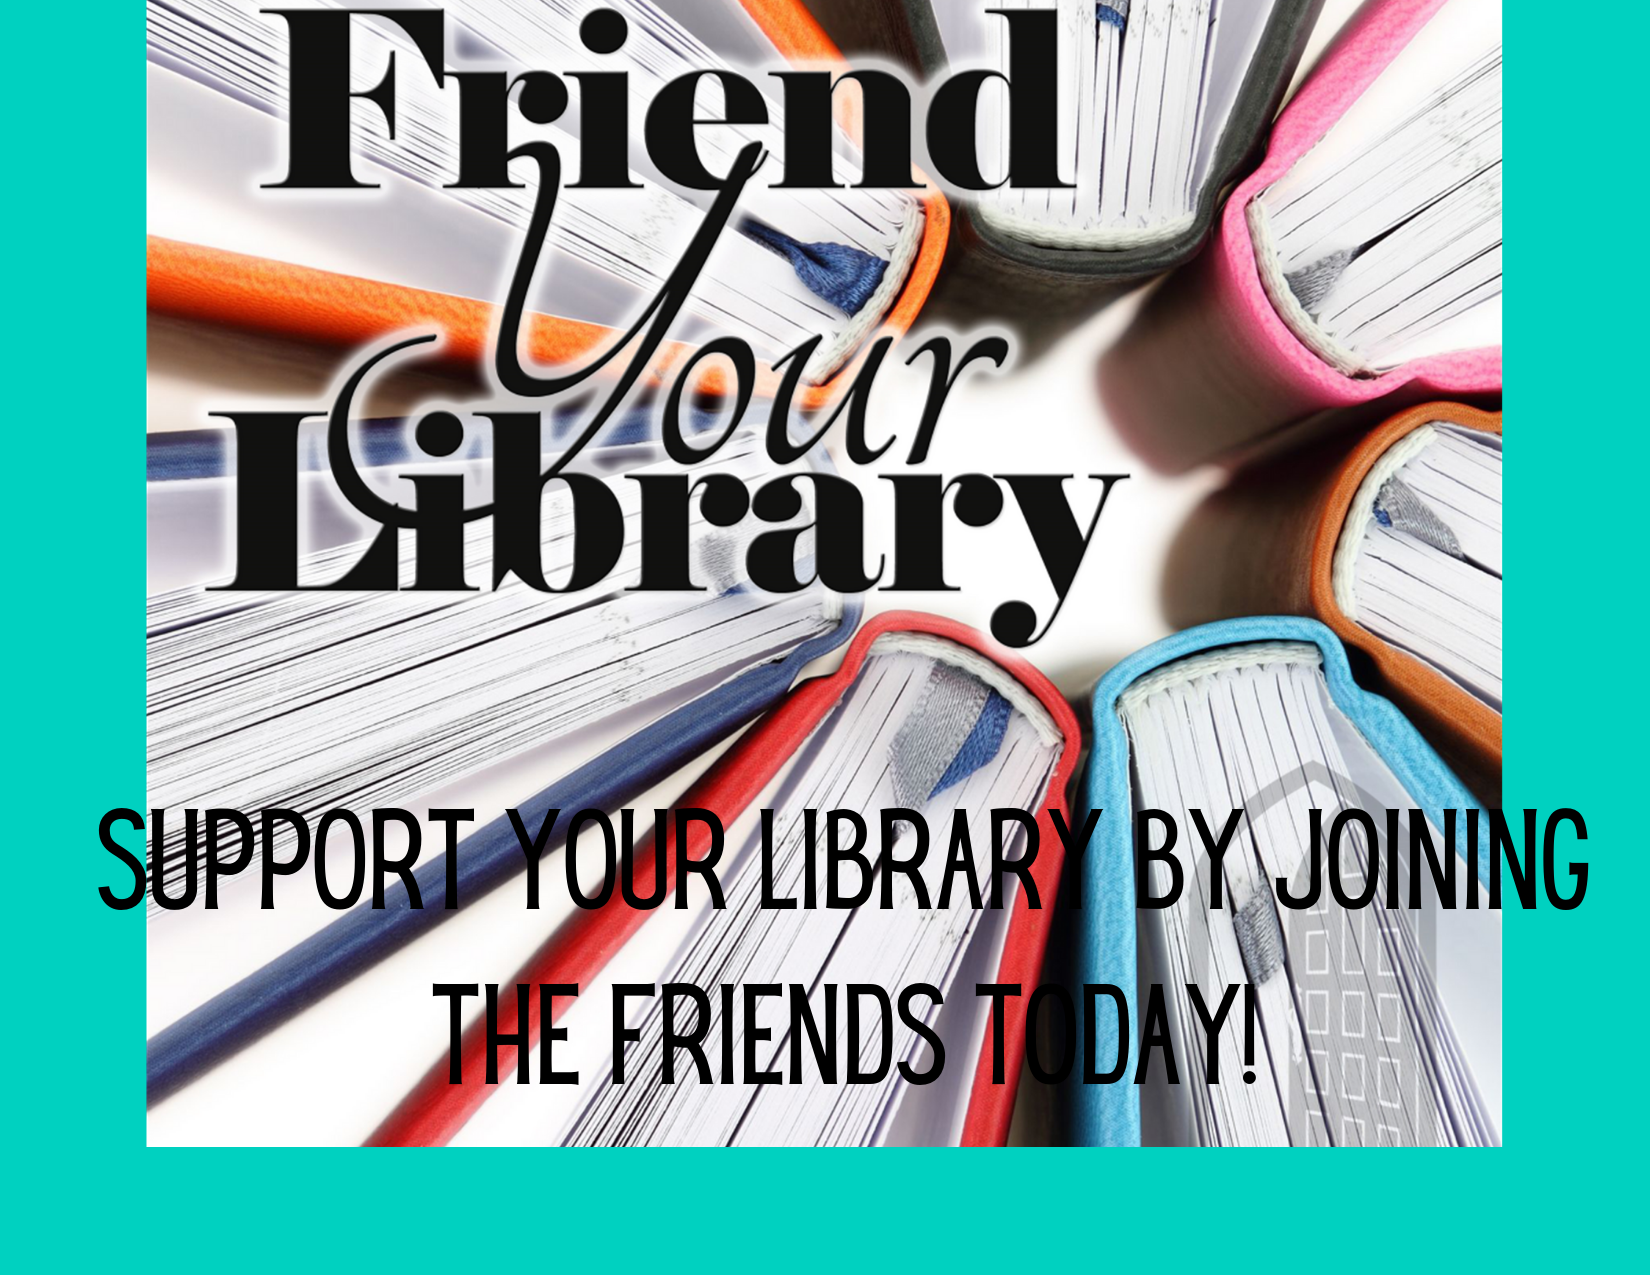 Join the Friends of the Library!